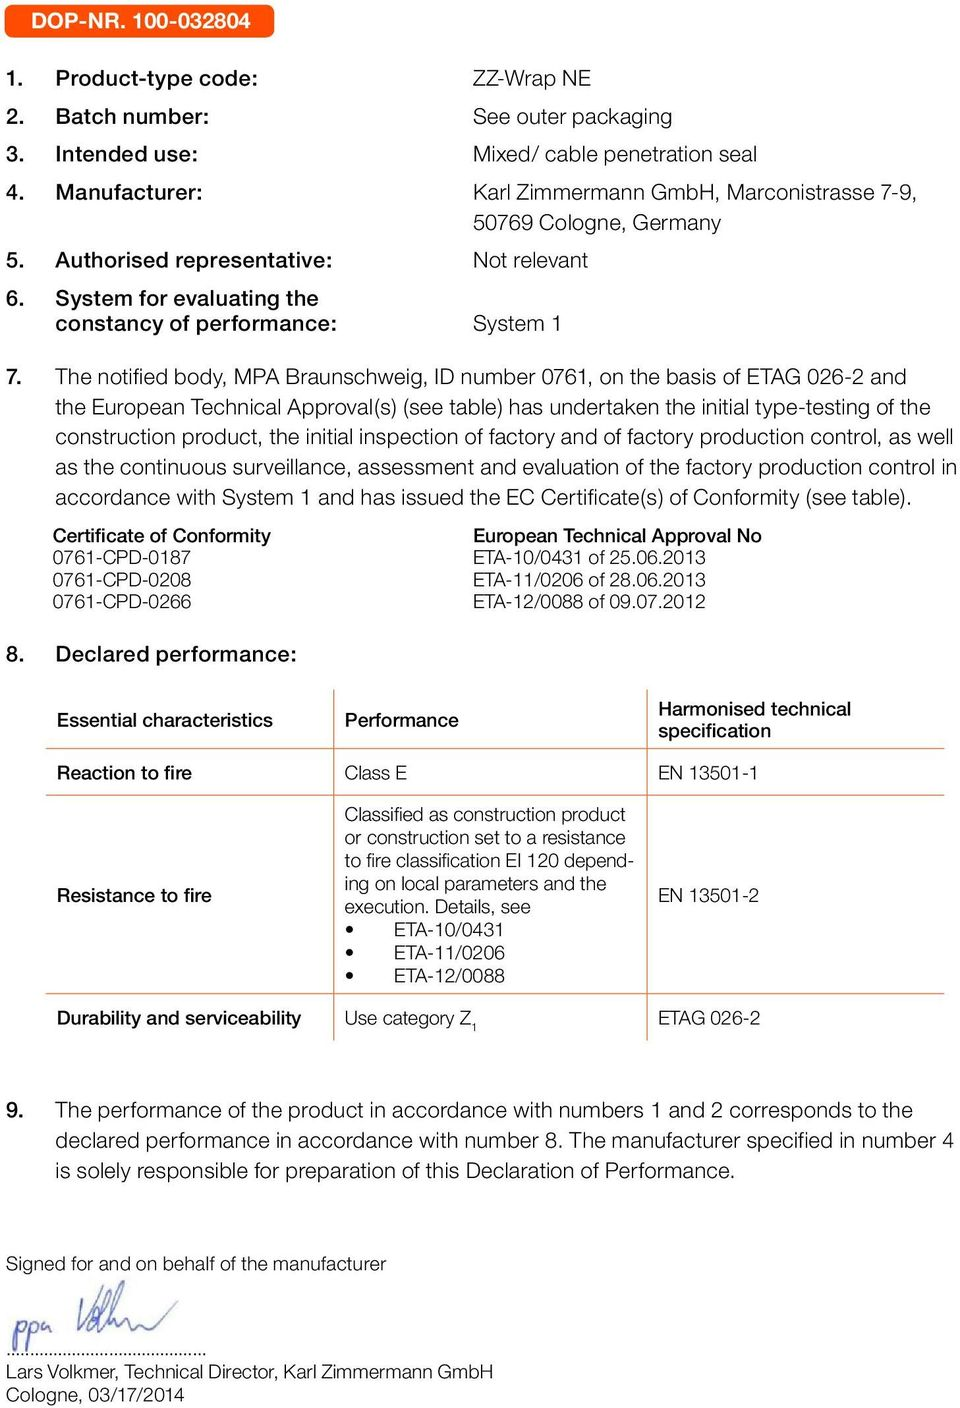 The notified body, MPA Braunschweig, ID number 0761, on the basis of and the European Technical Approval(s) (see table) has undertaken the initial type-testing of the construction product, the